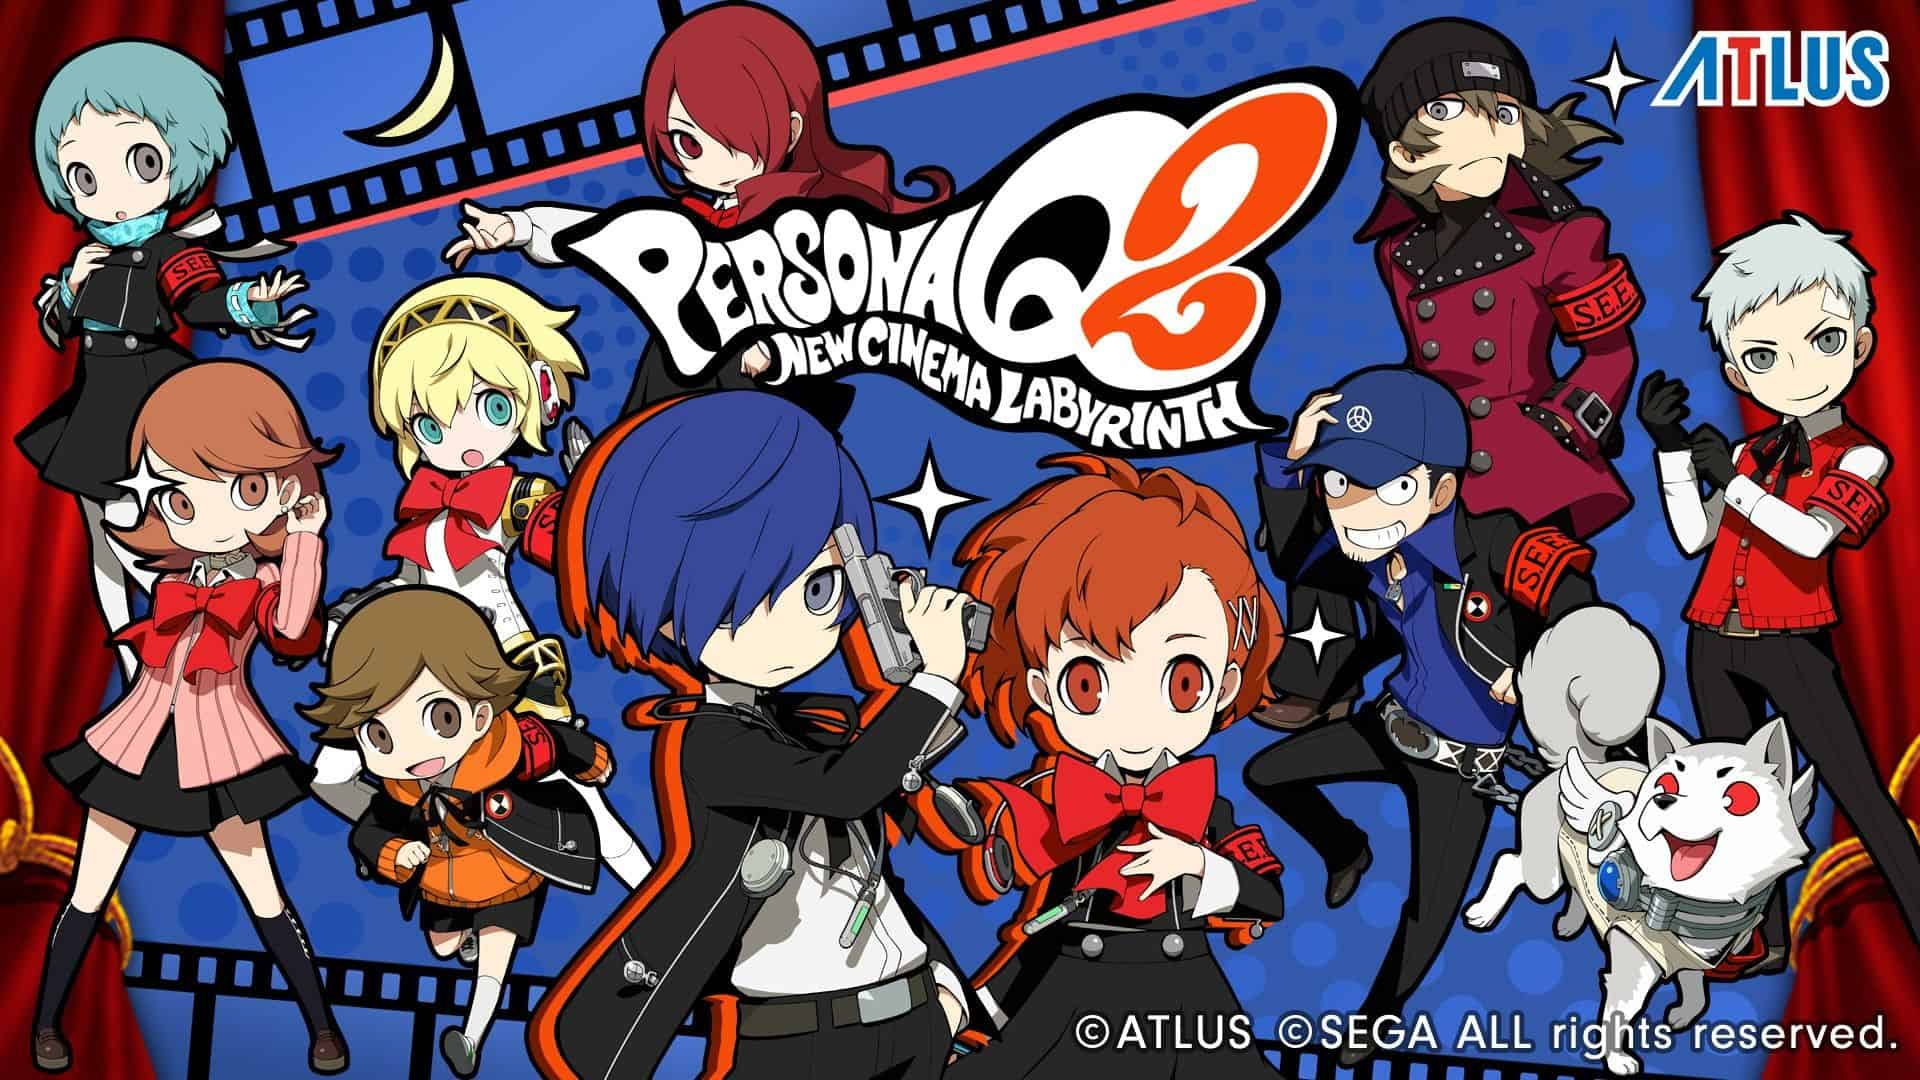 TRAILER: Persona Q2: New Cinema Labyrinth Out Now